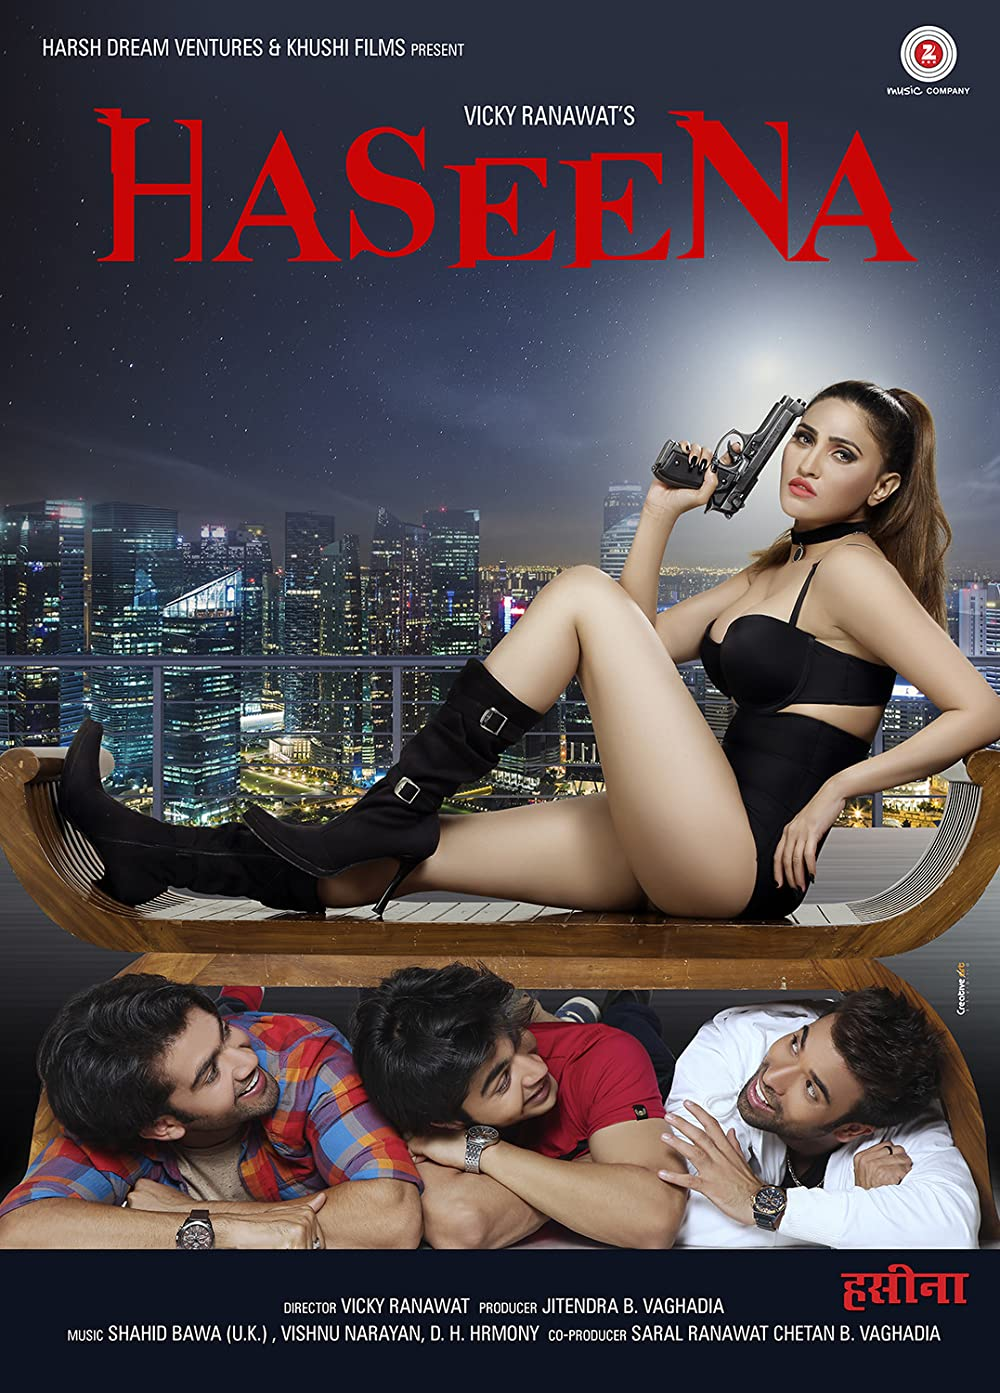 18+ Haseena 2018 Hindi 480p HDRip 350MB x264 AAC